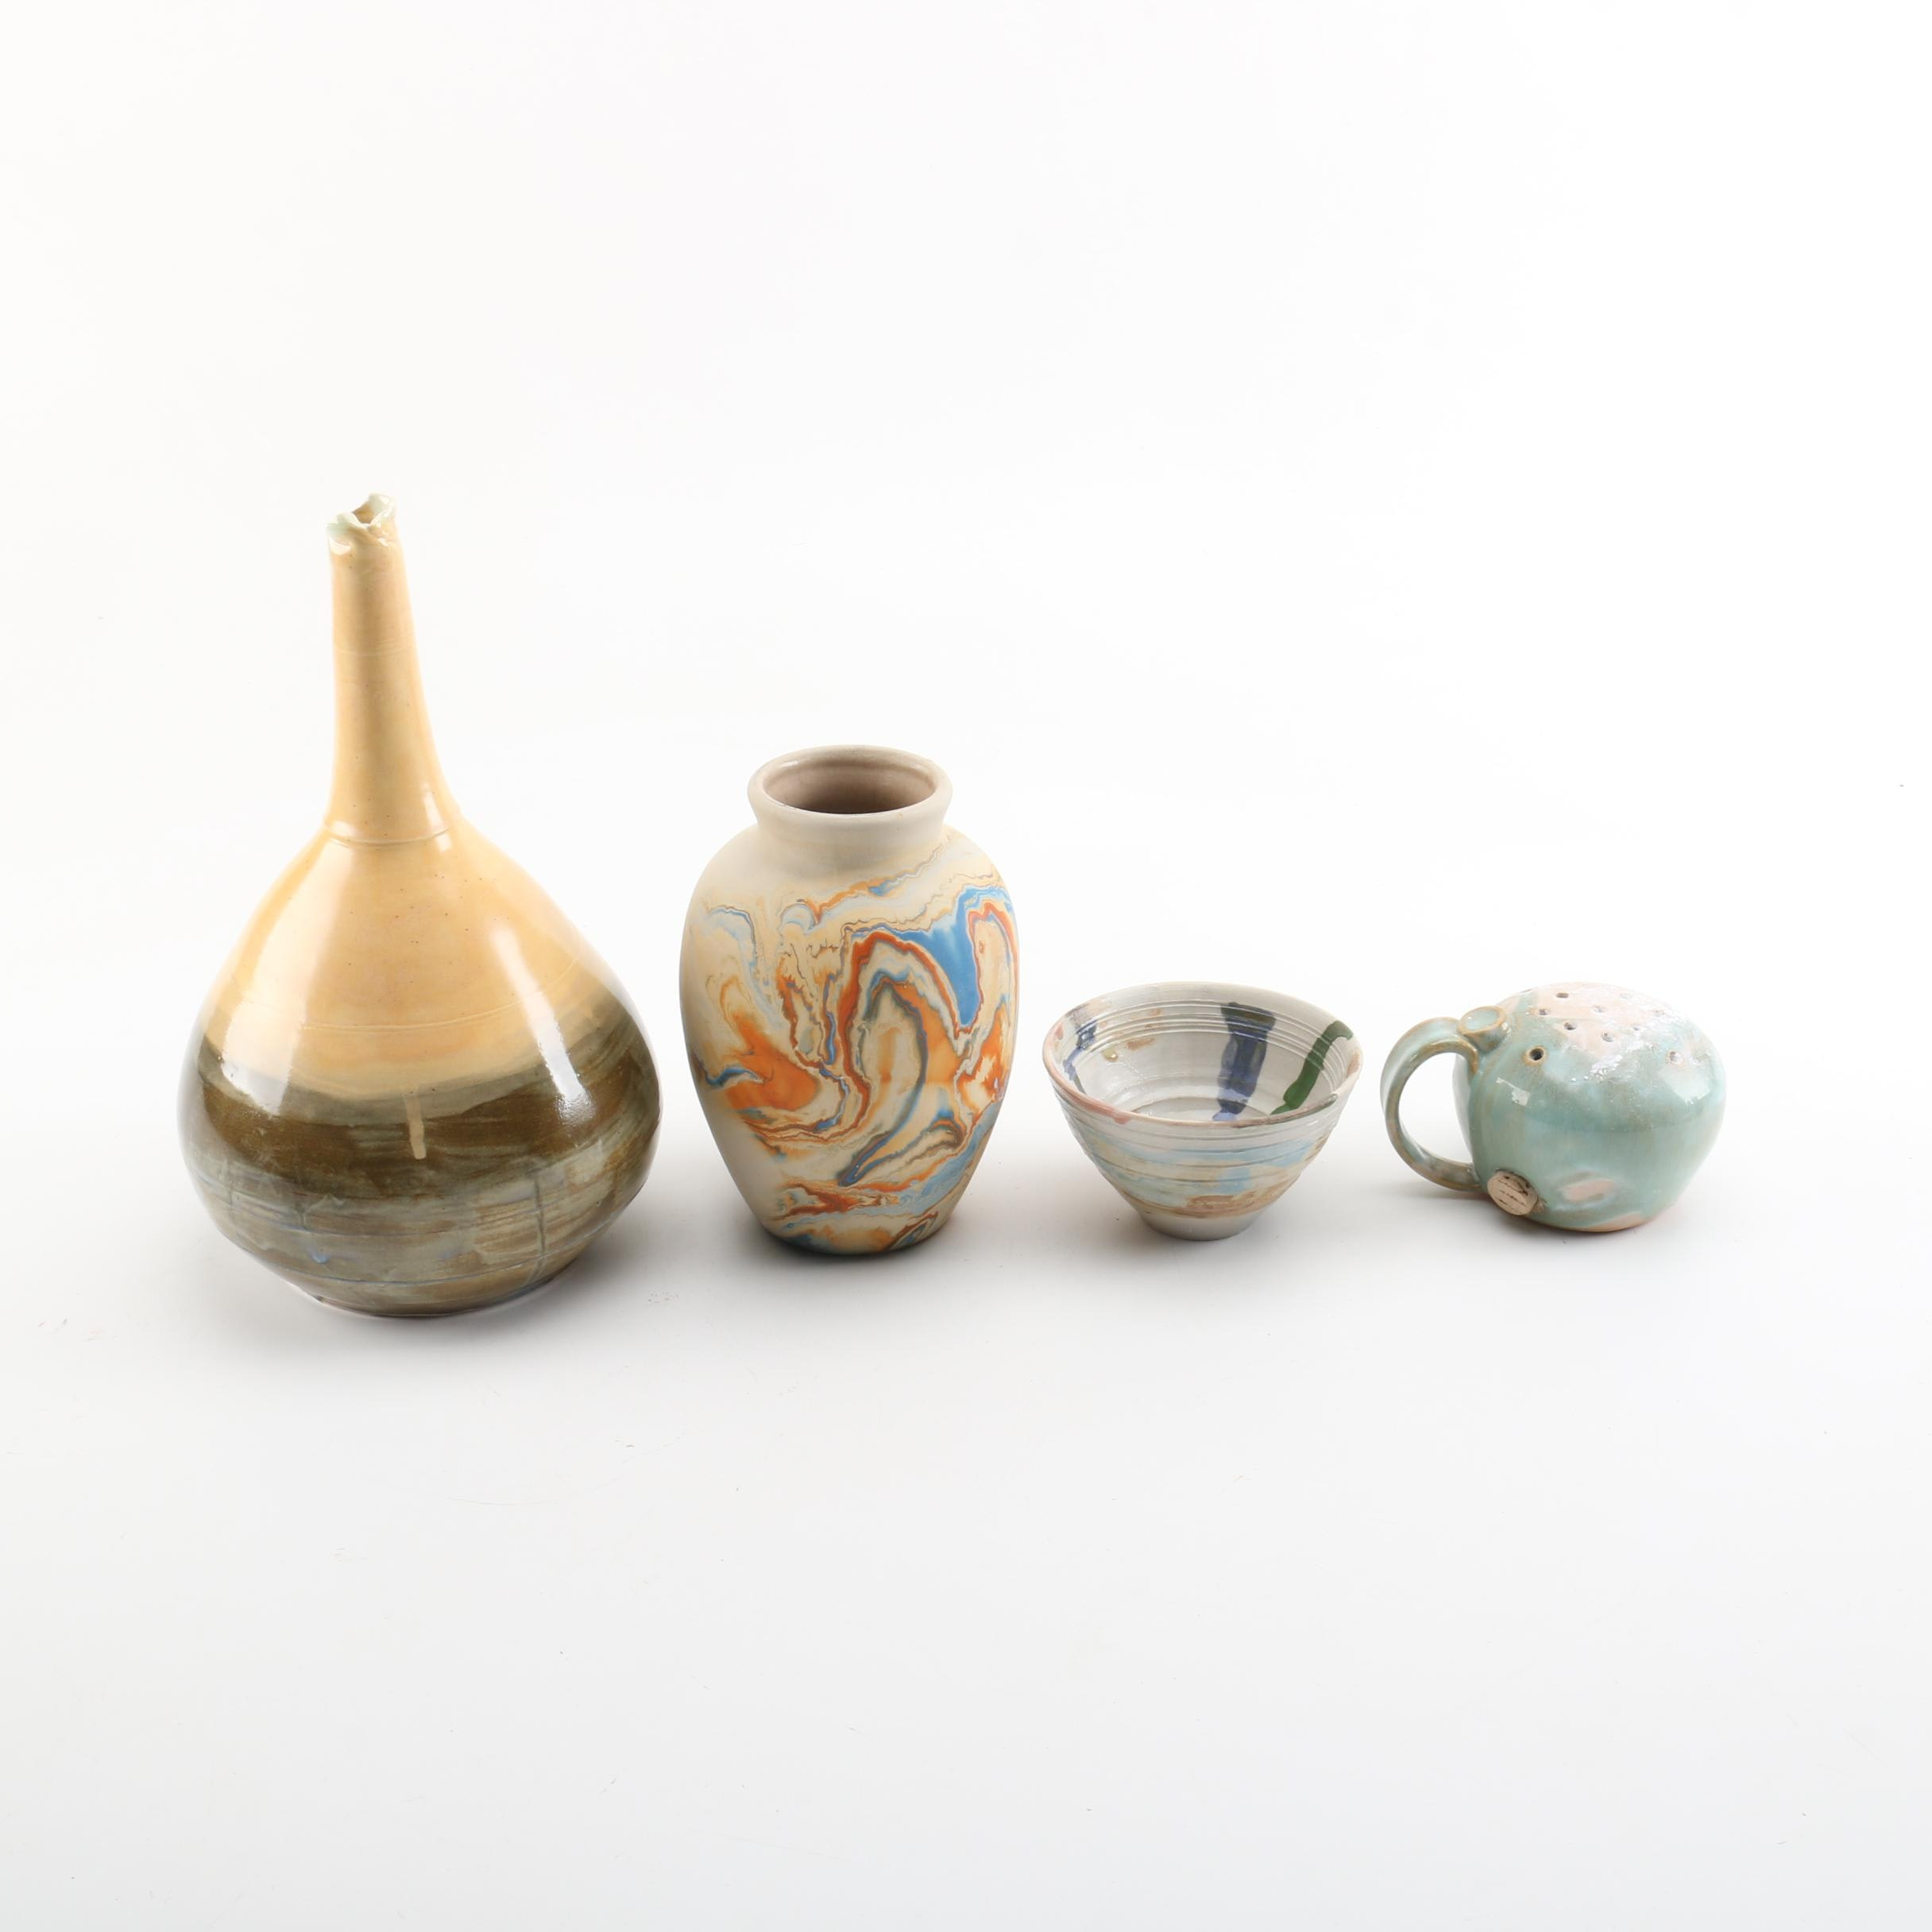 Nemadji Pottery Vase and Art Pottery Vessels